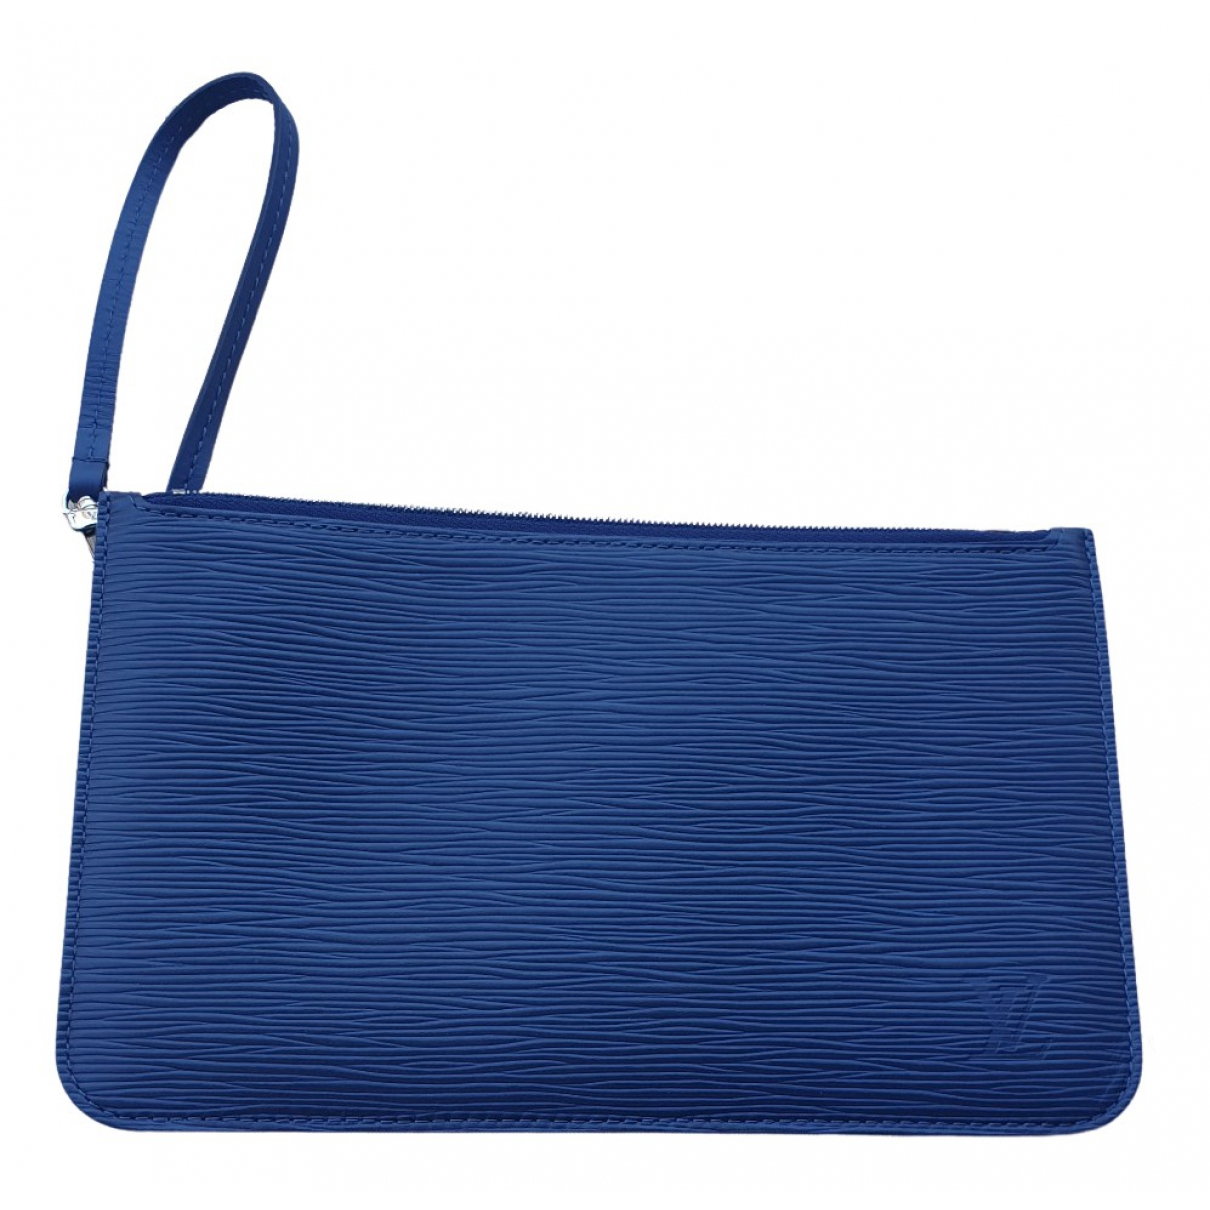 Louis Vuitton Neverfull Blue Leather Clutch bag for Women \N